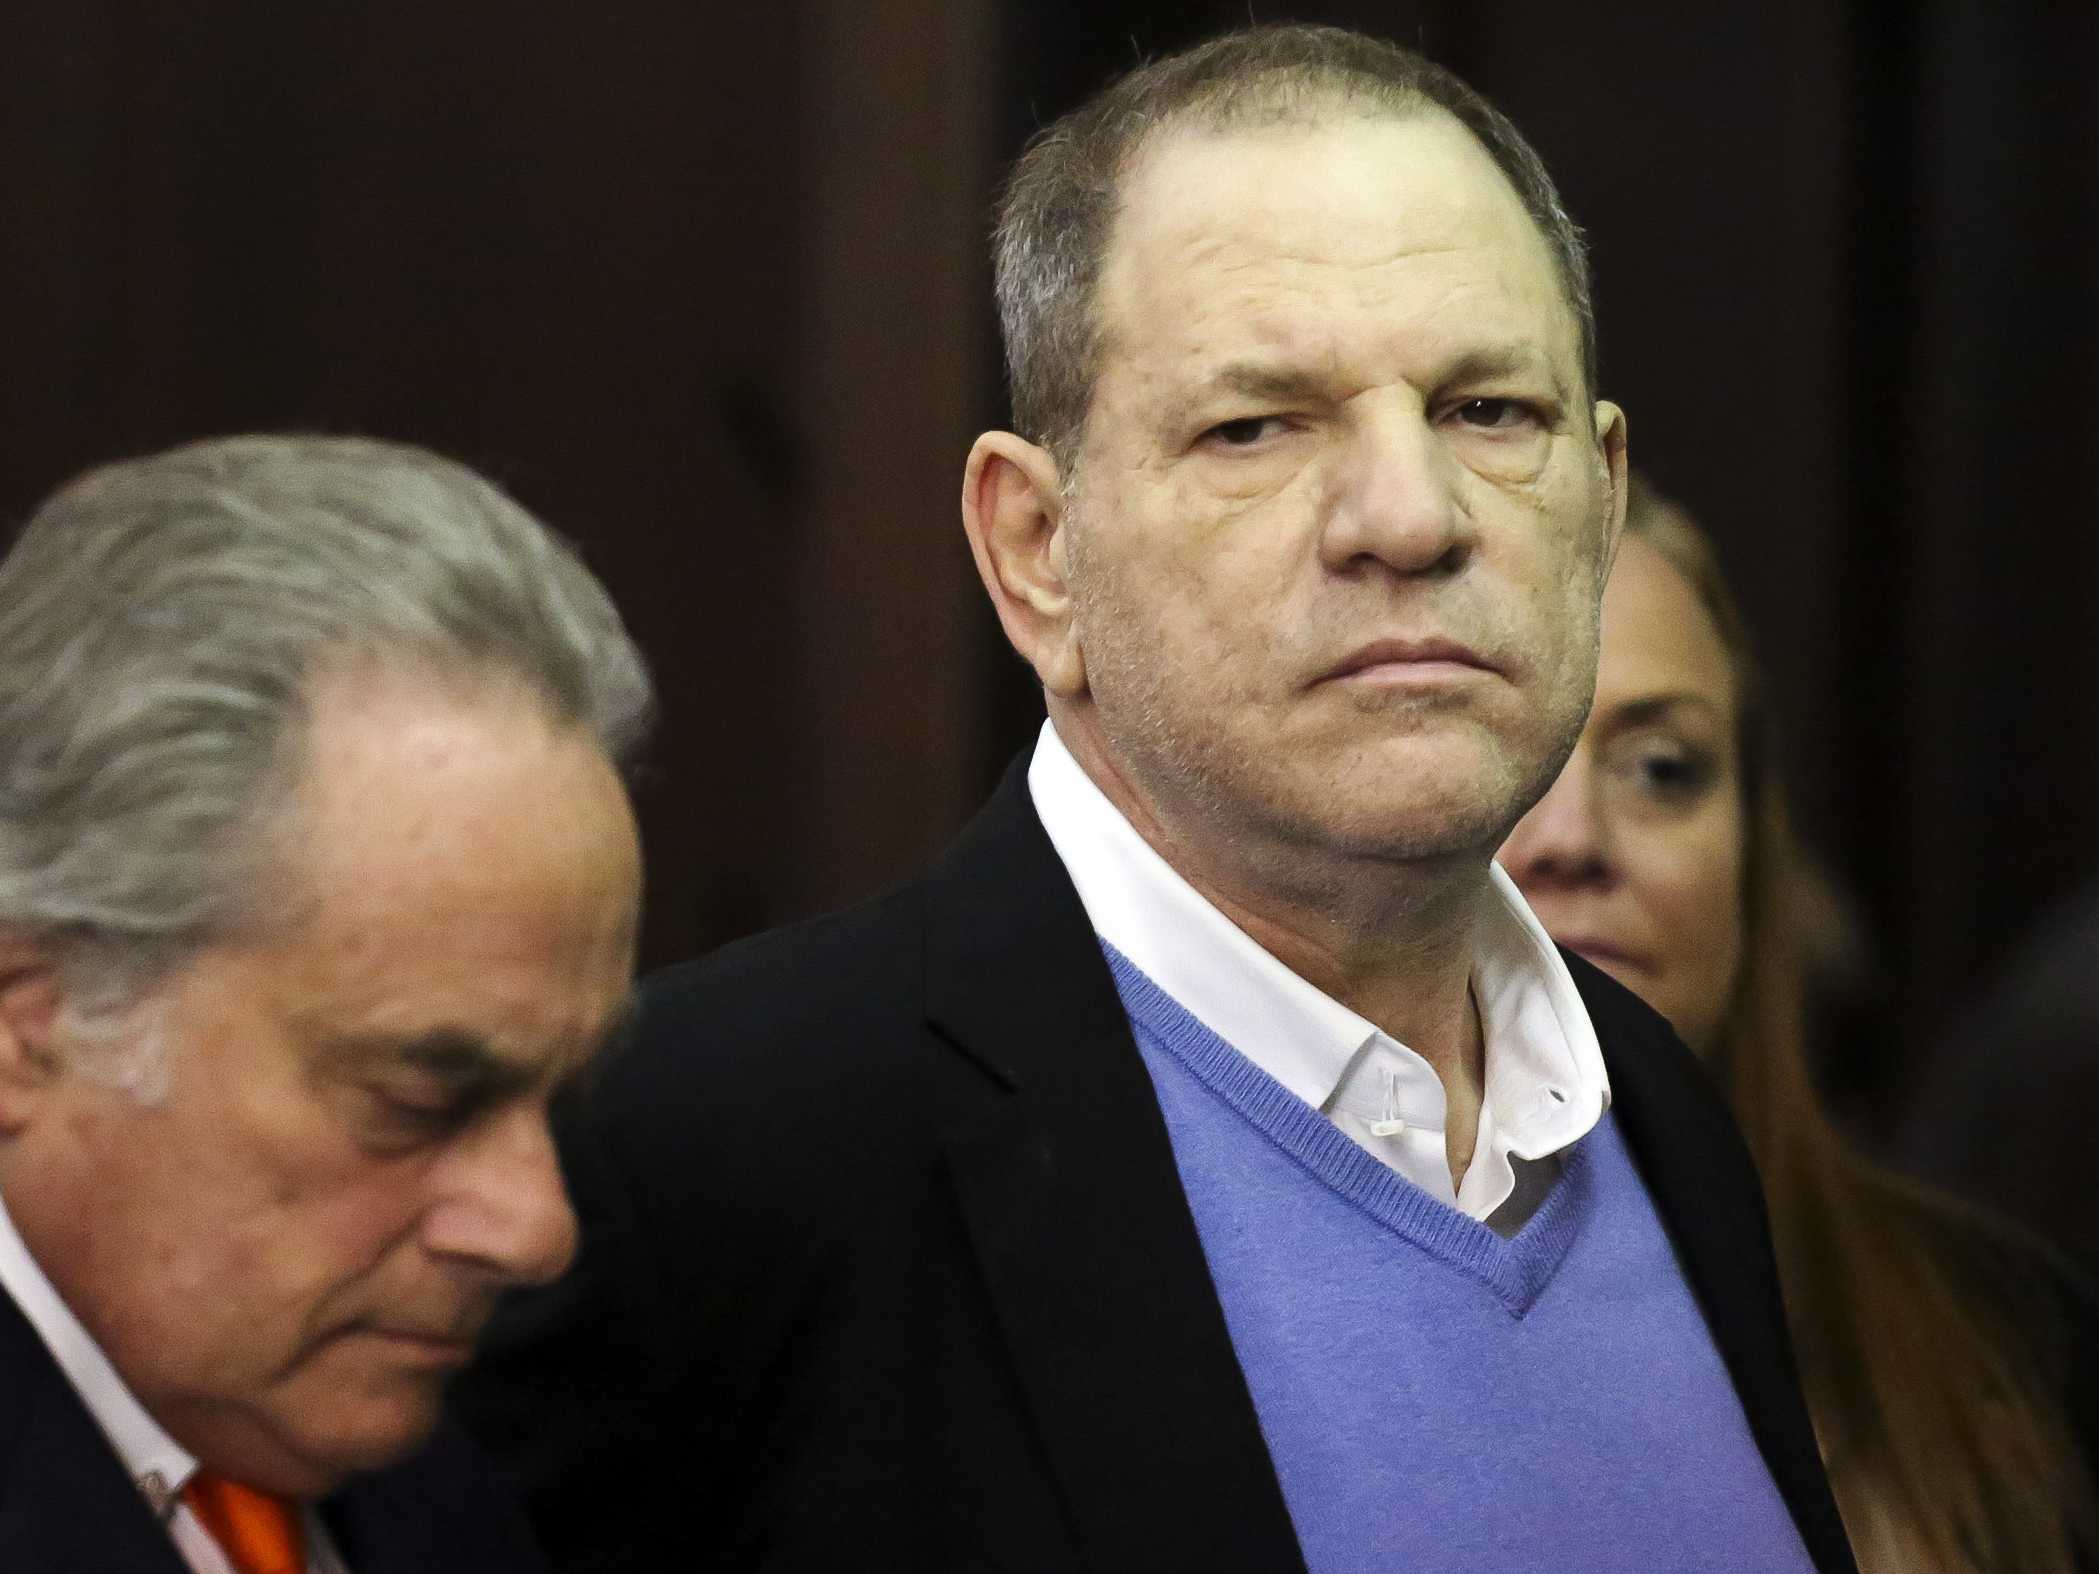 Legal Hurdles May Make Weinstein's Prosecution An Exception